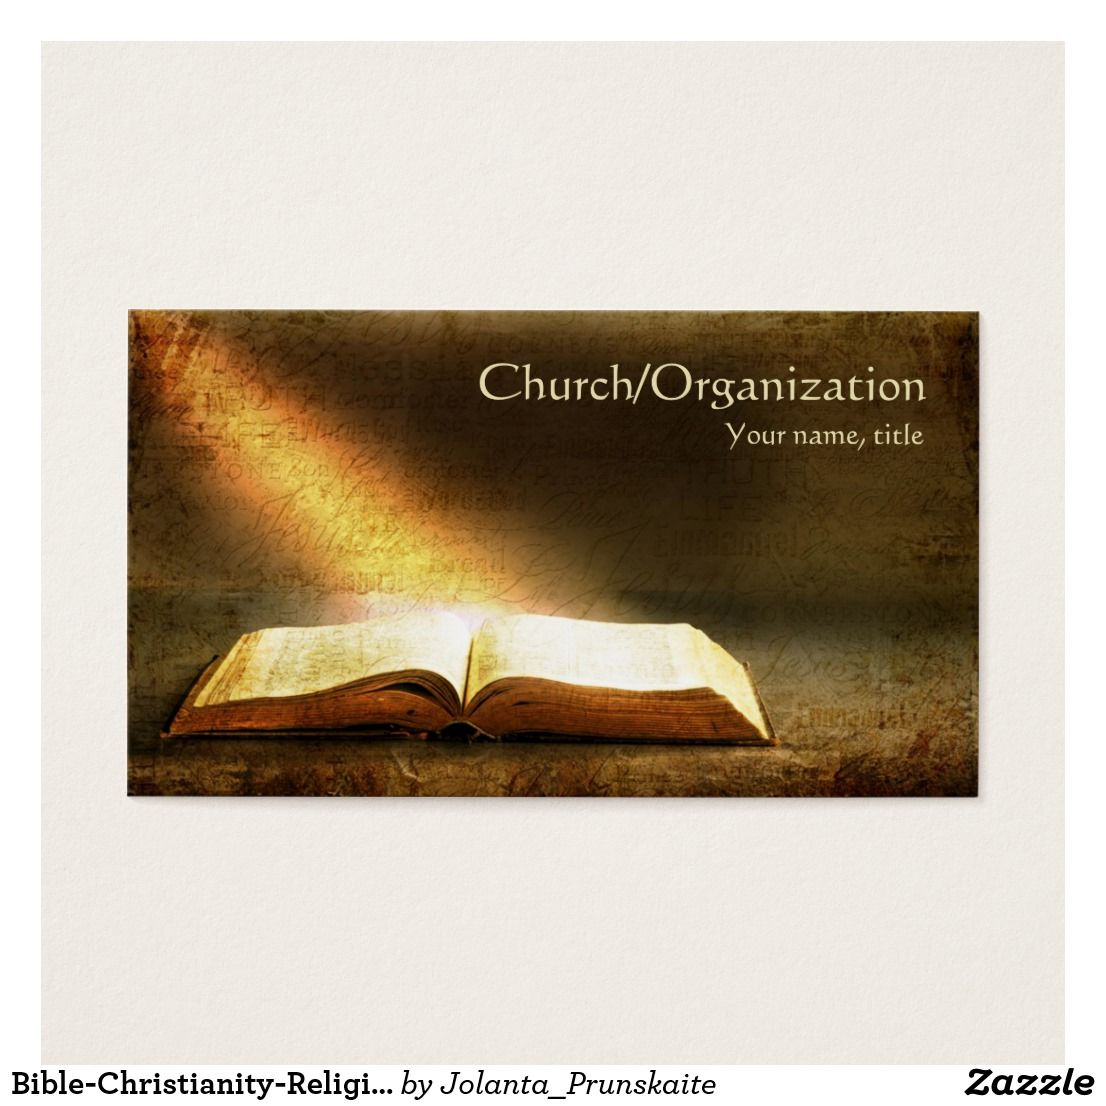 Bible-Christianity-Religious Business Card | Christianity